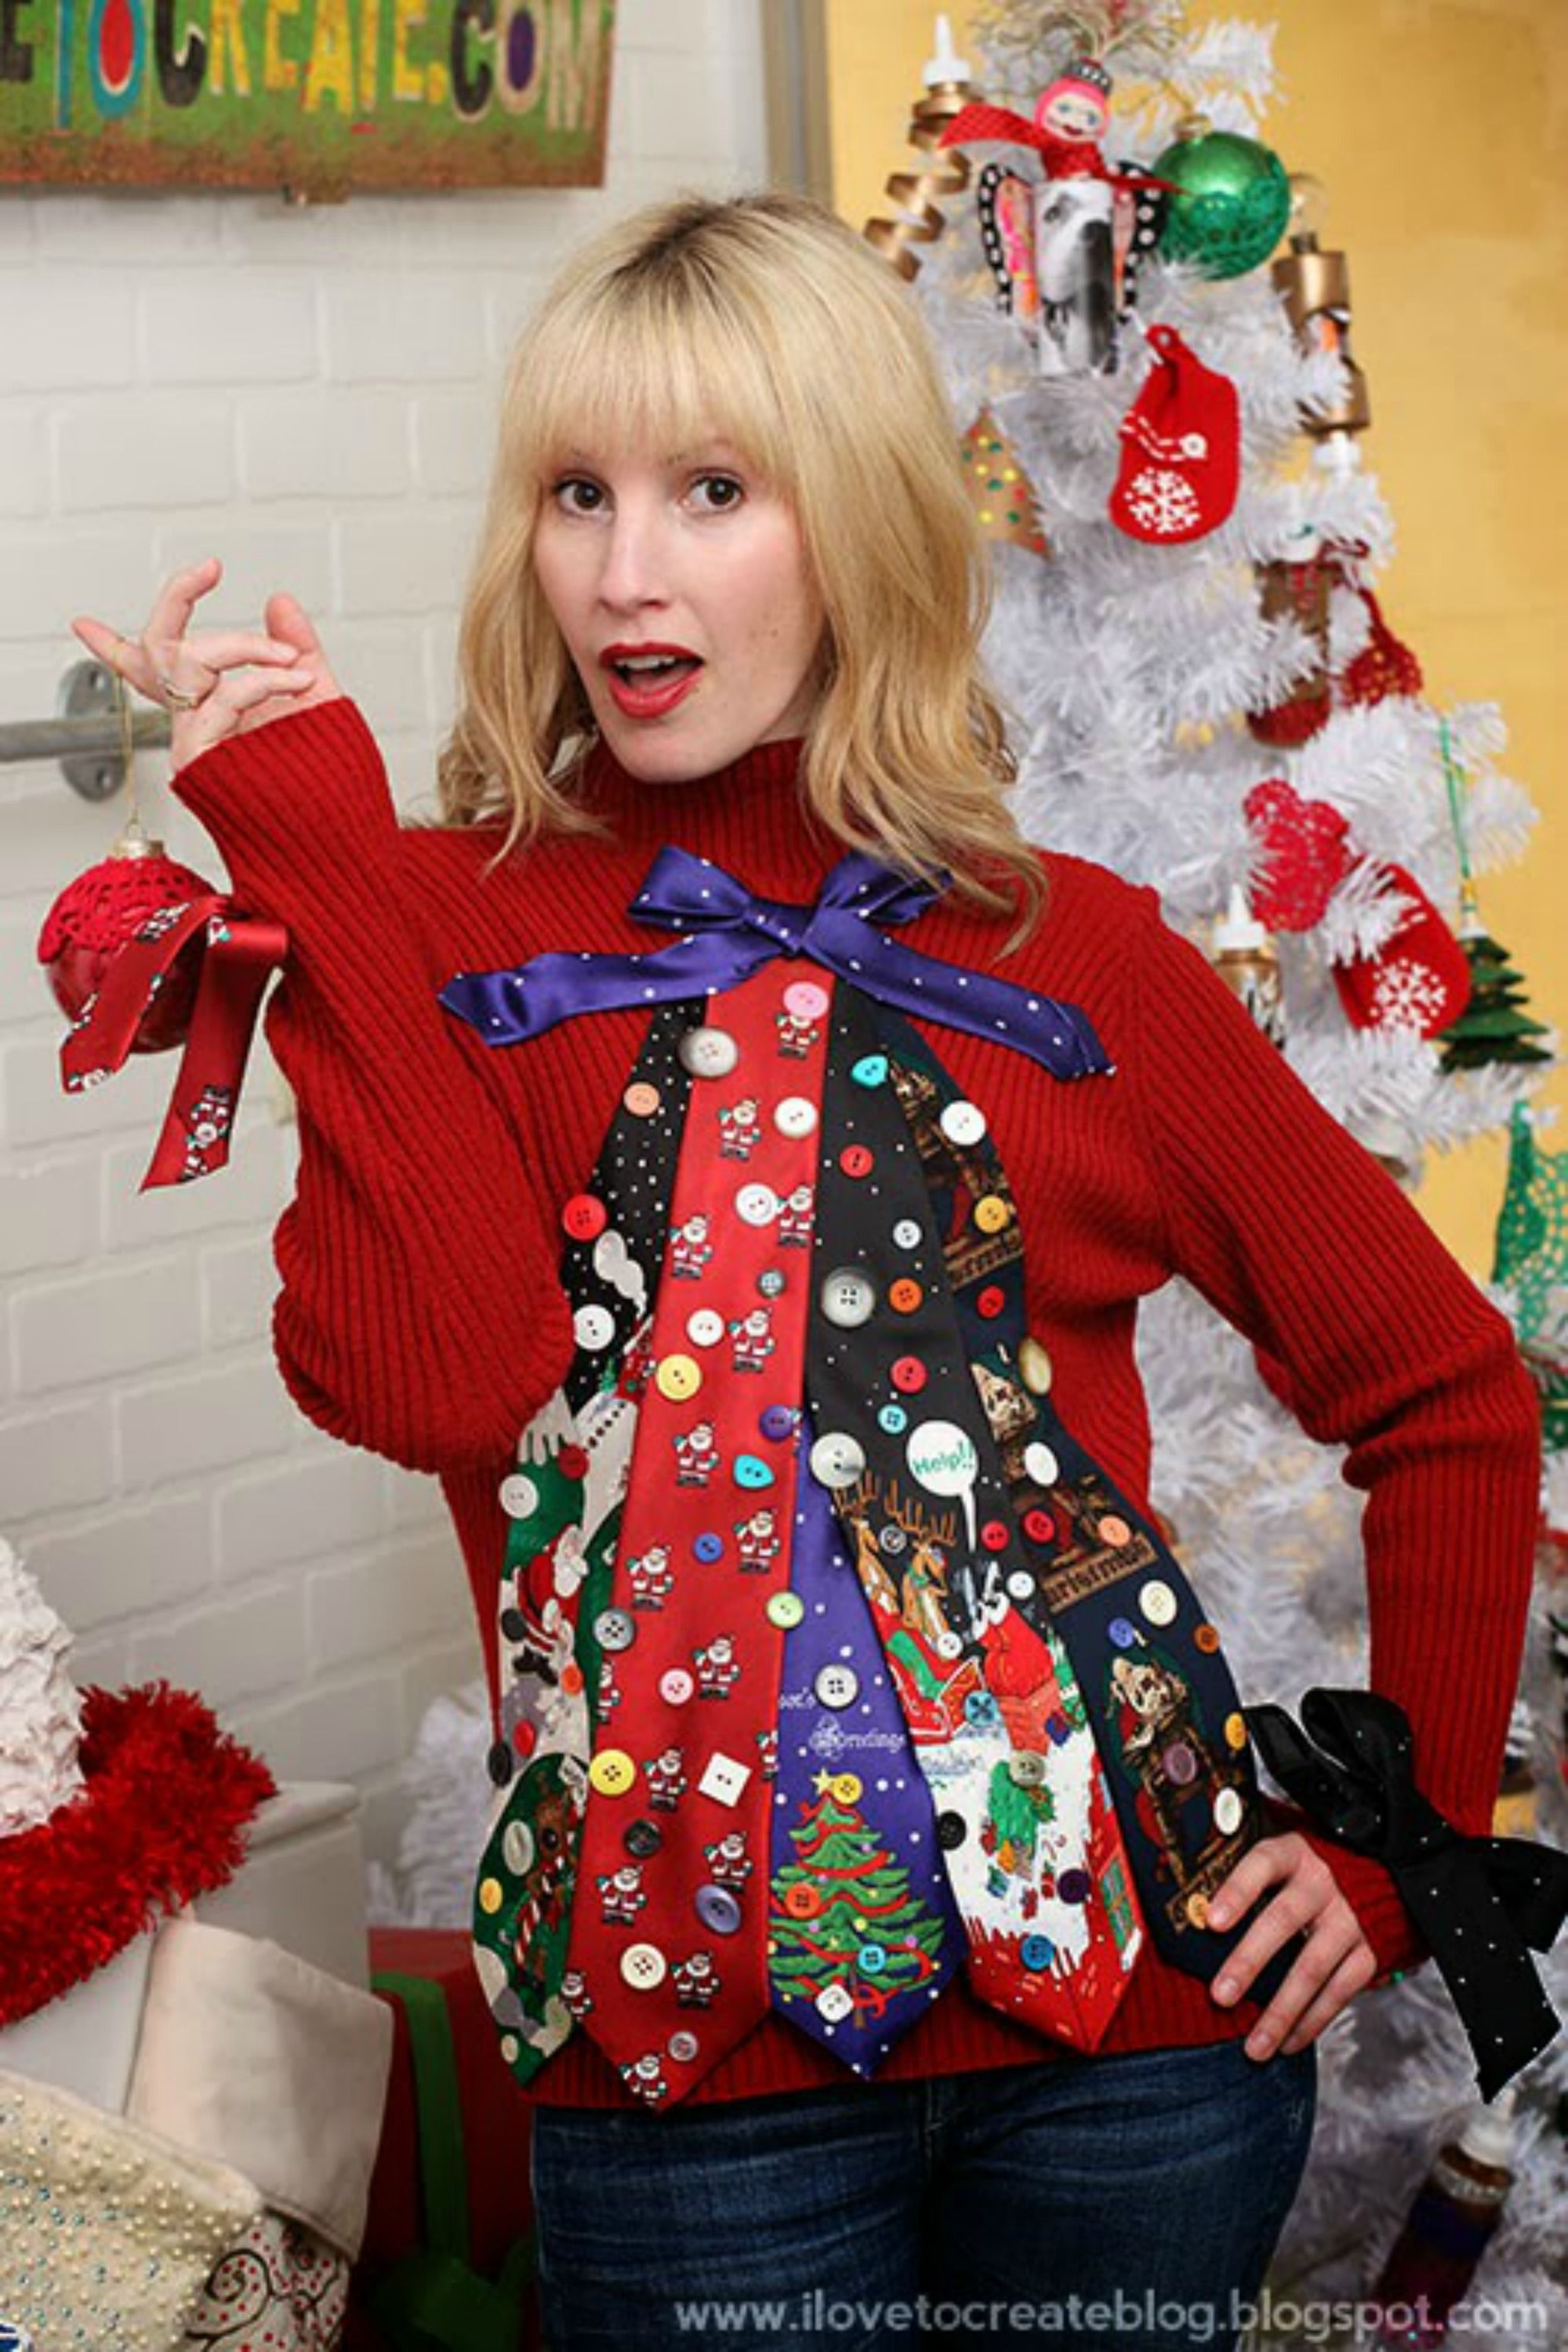 22 Ugly Christmas Sweater Ideas to Buy and DIY - Tacky Christmas Sweaters for Women